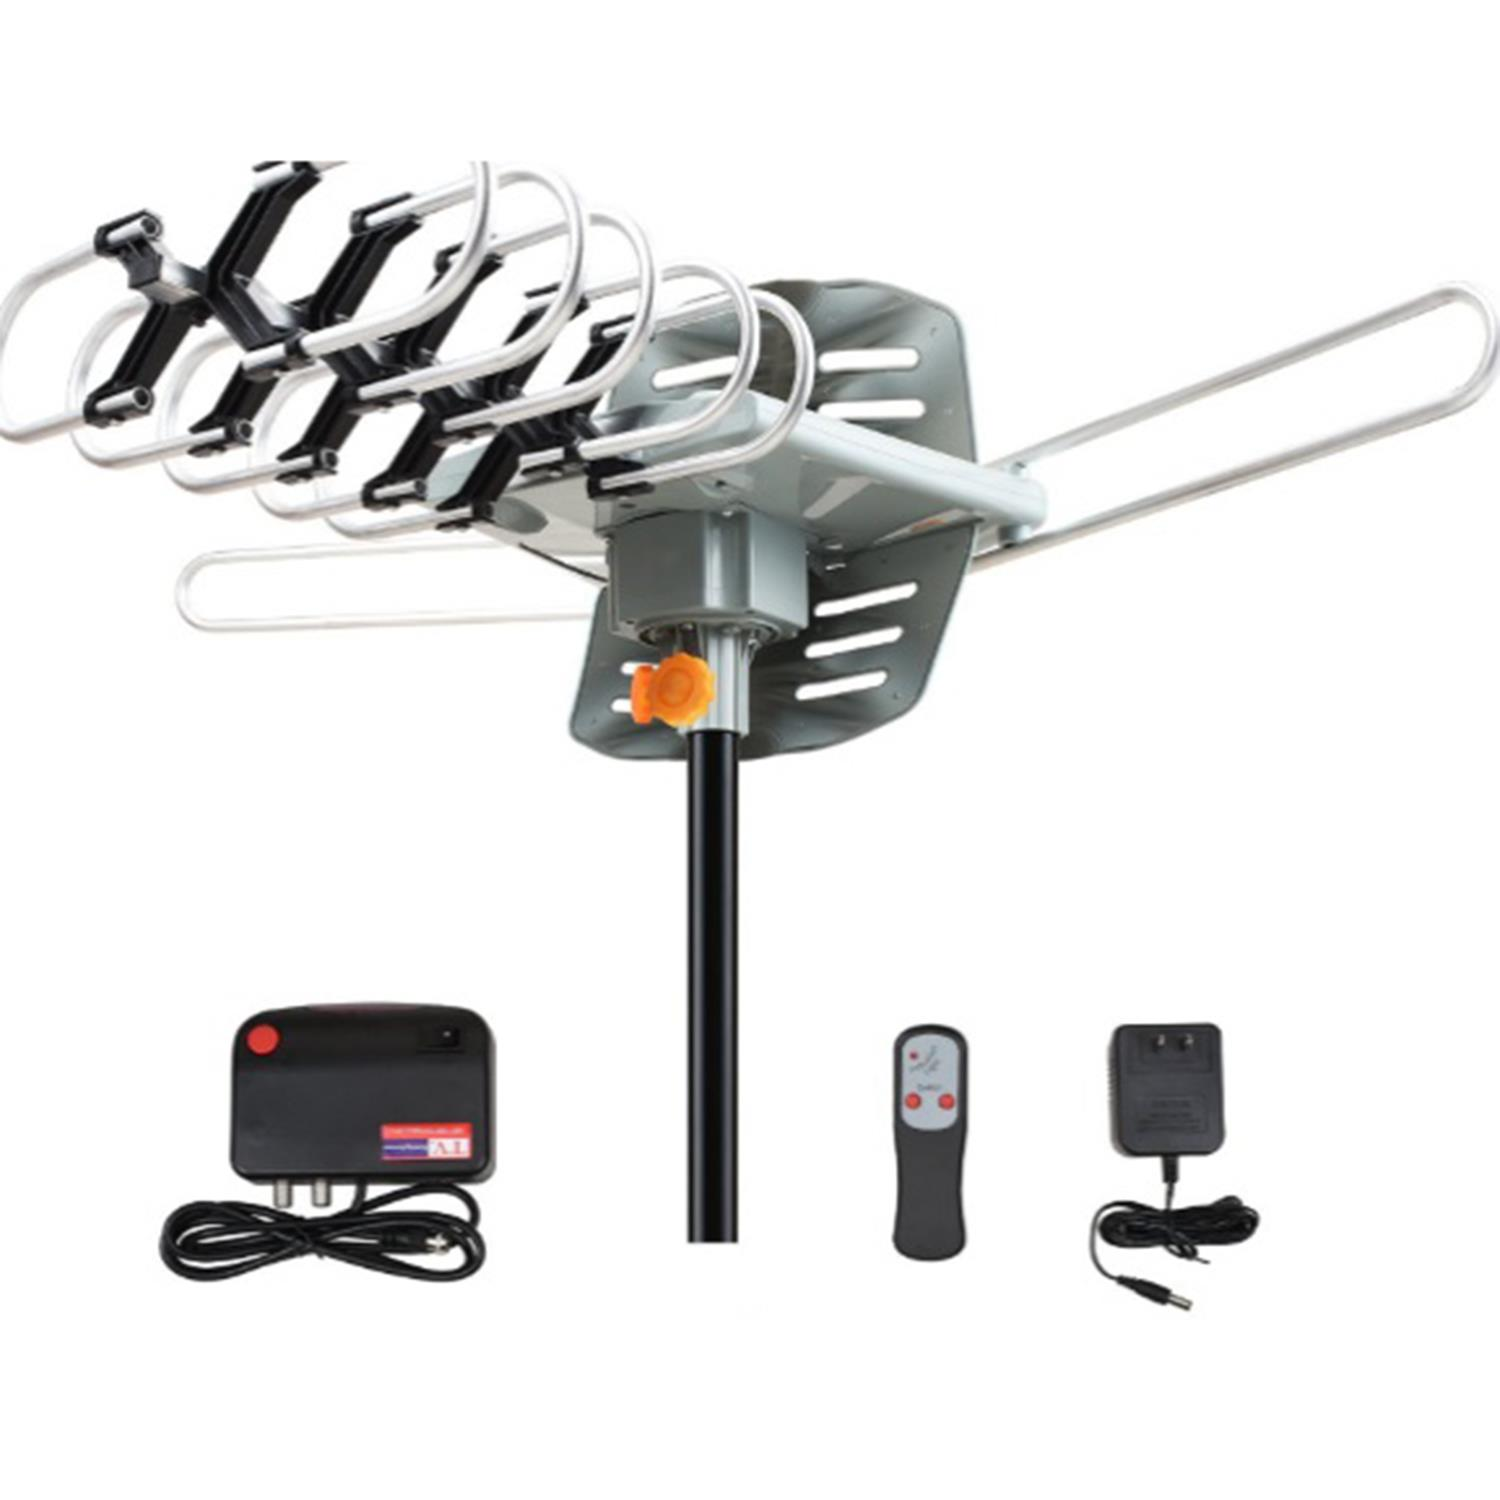 Ktaxon HDTV Antenna Amplified Digital TV Antenna 150 Miles Range 360 Degree Rotation Outdoor